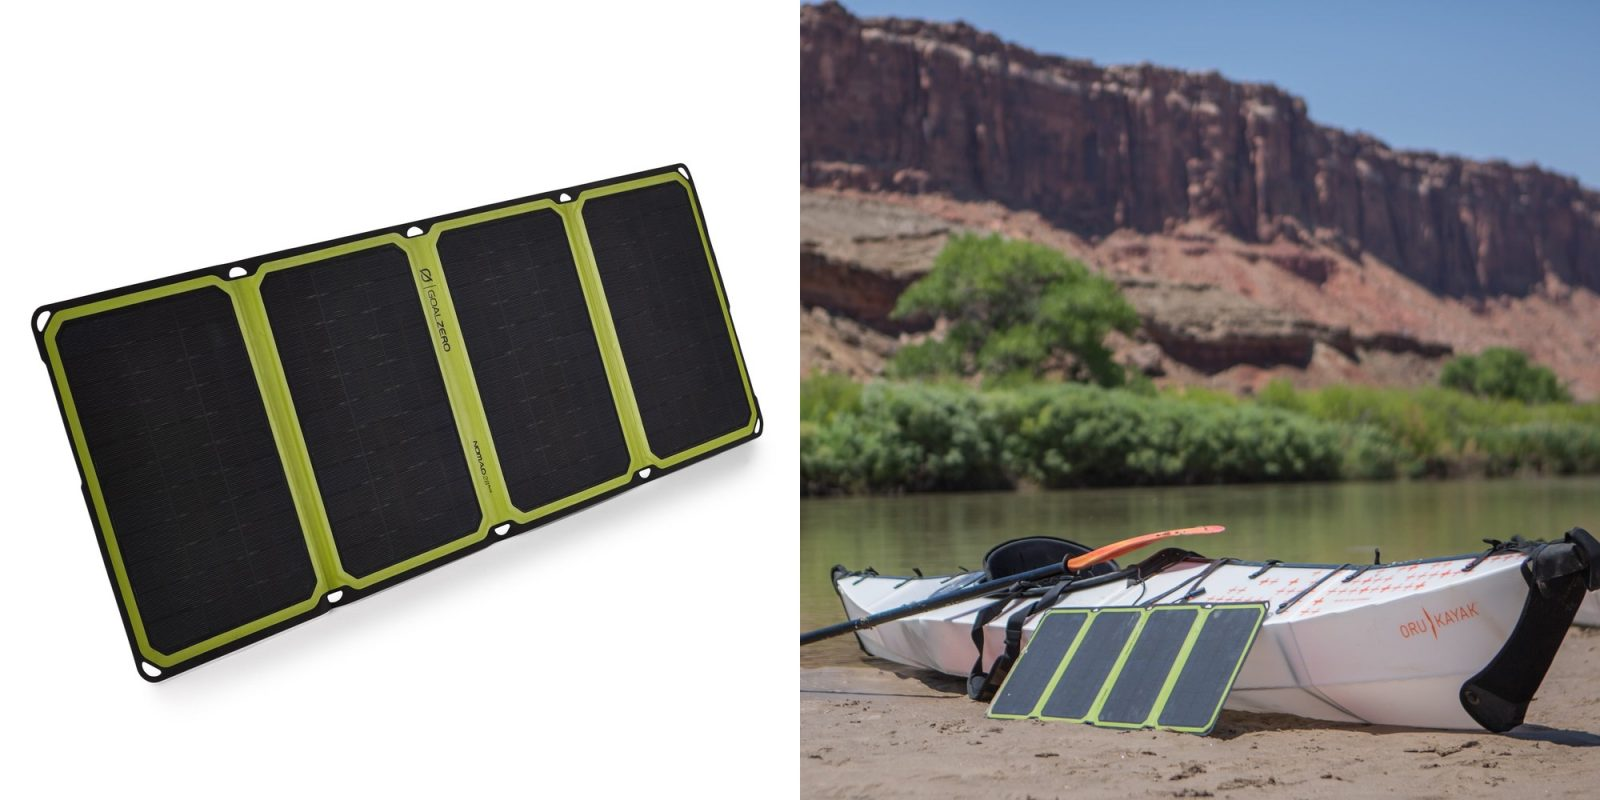 Save 30% on Goal Zero's $175 Nomad 28 Plus Solar Panel Charger at a 2019 low